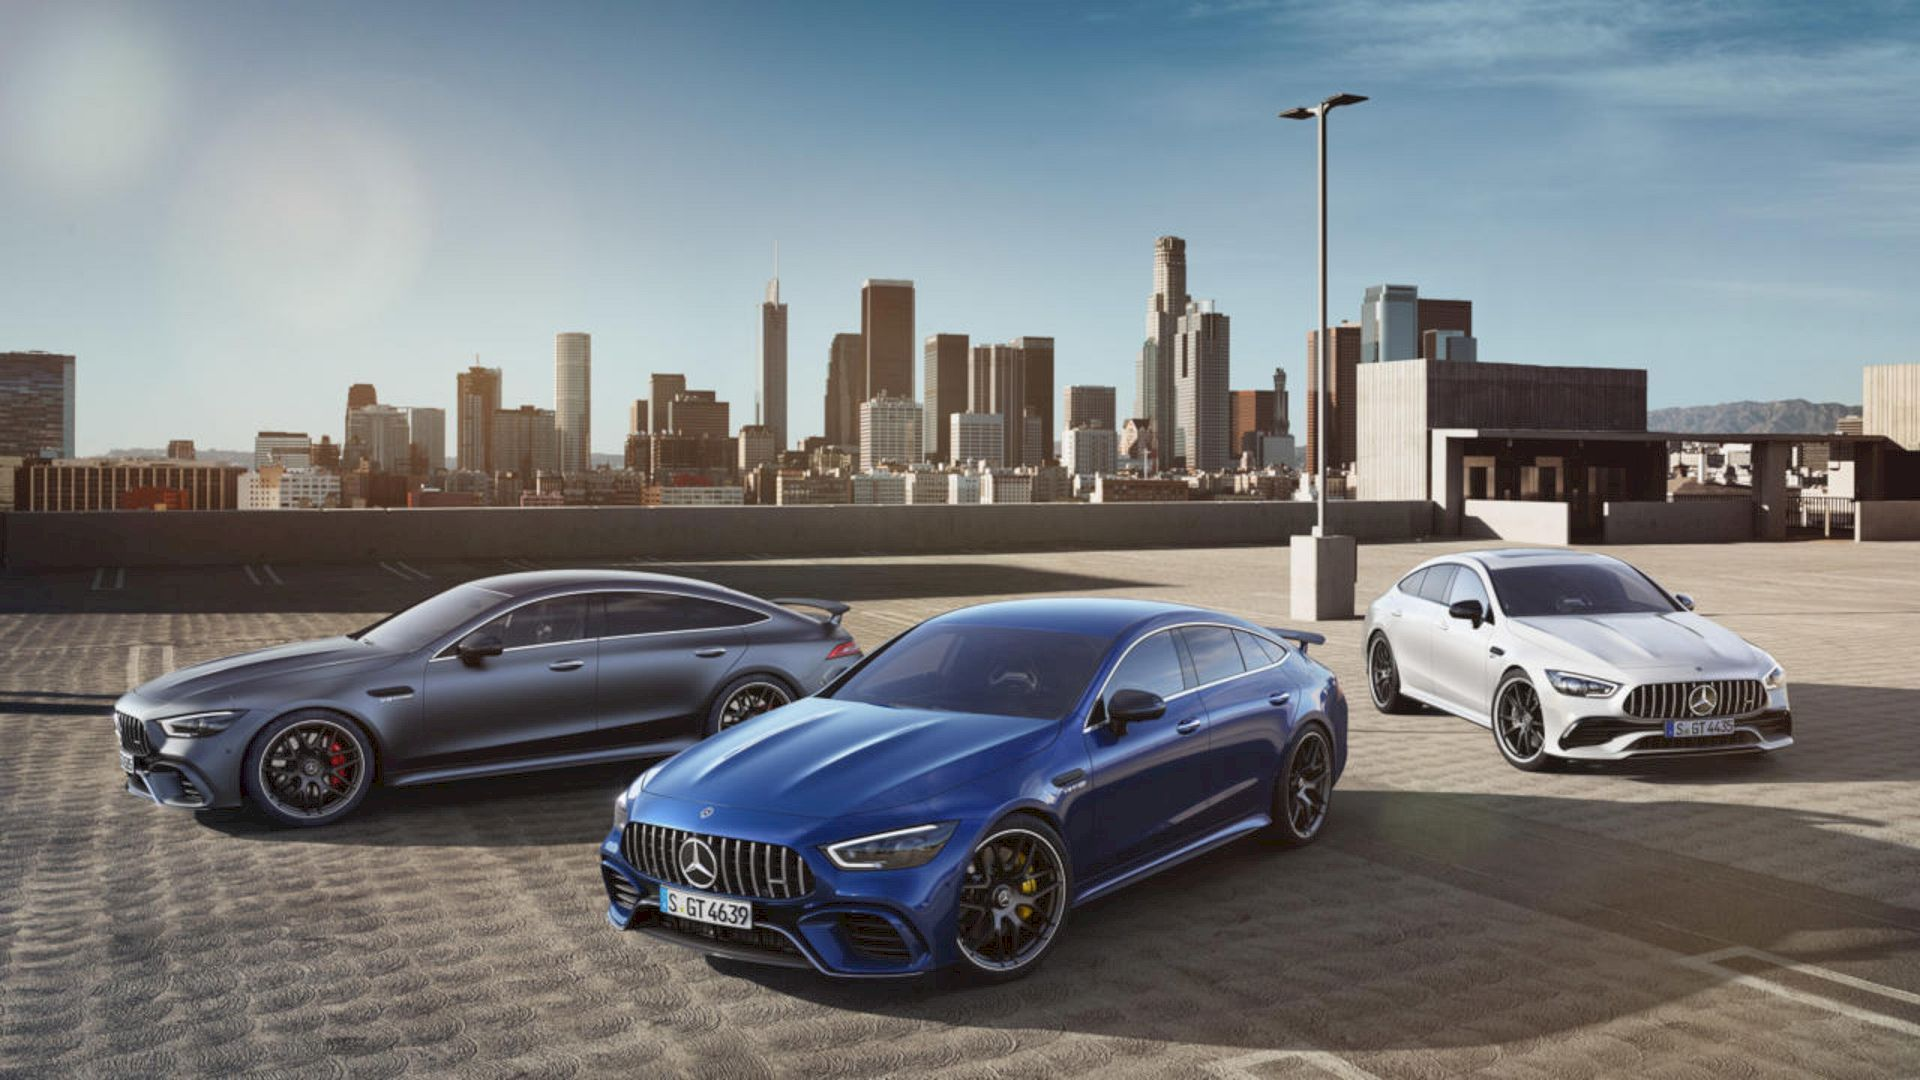 Mercedes Amg Gt 4 Door Coupe Car For The One Who Enjoy